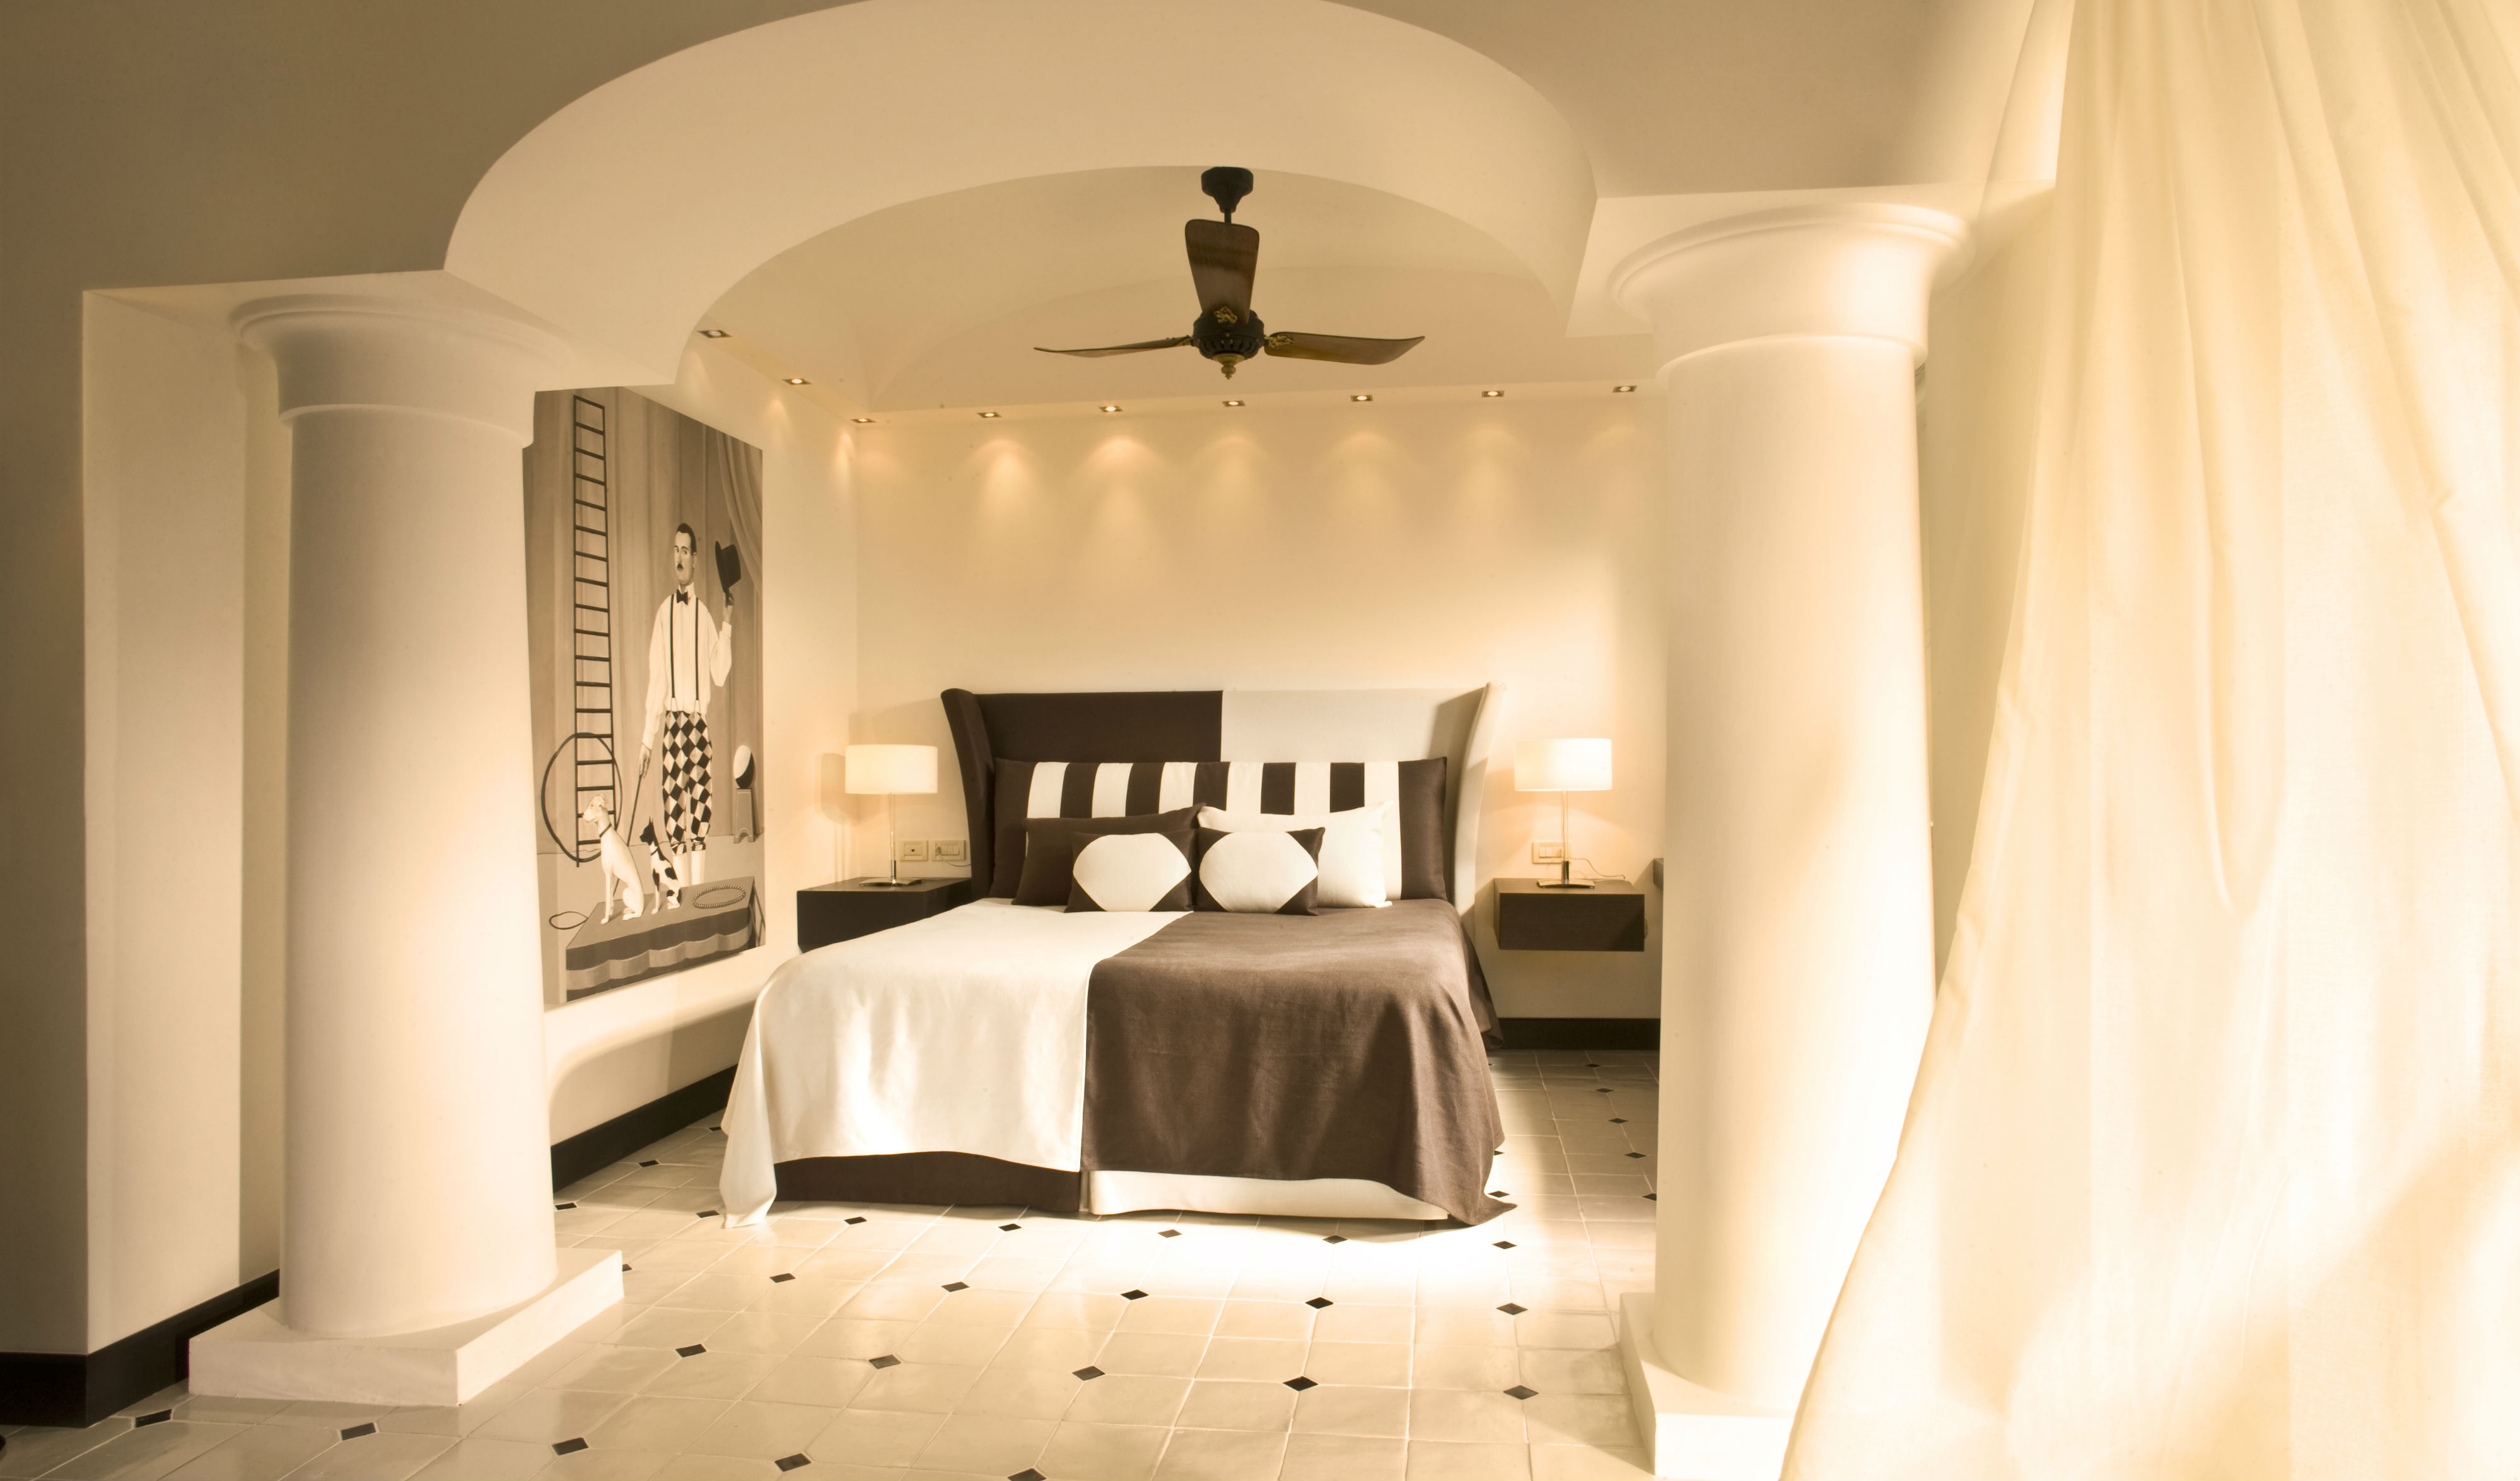 Suite at the Capri Palace in Italy